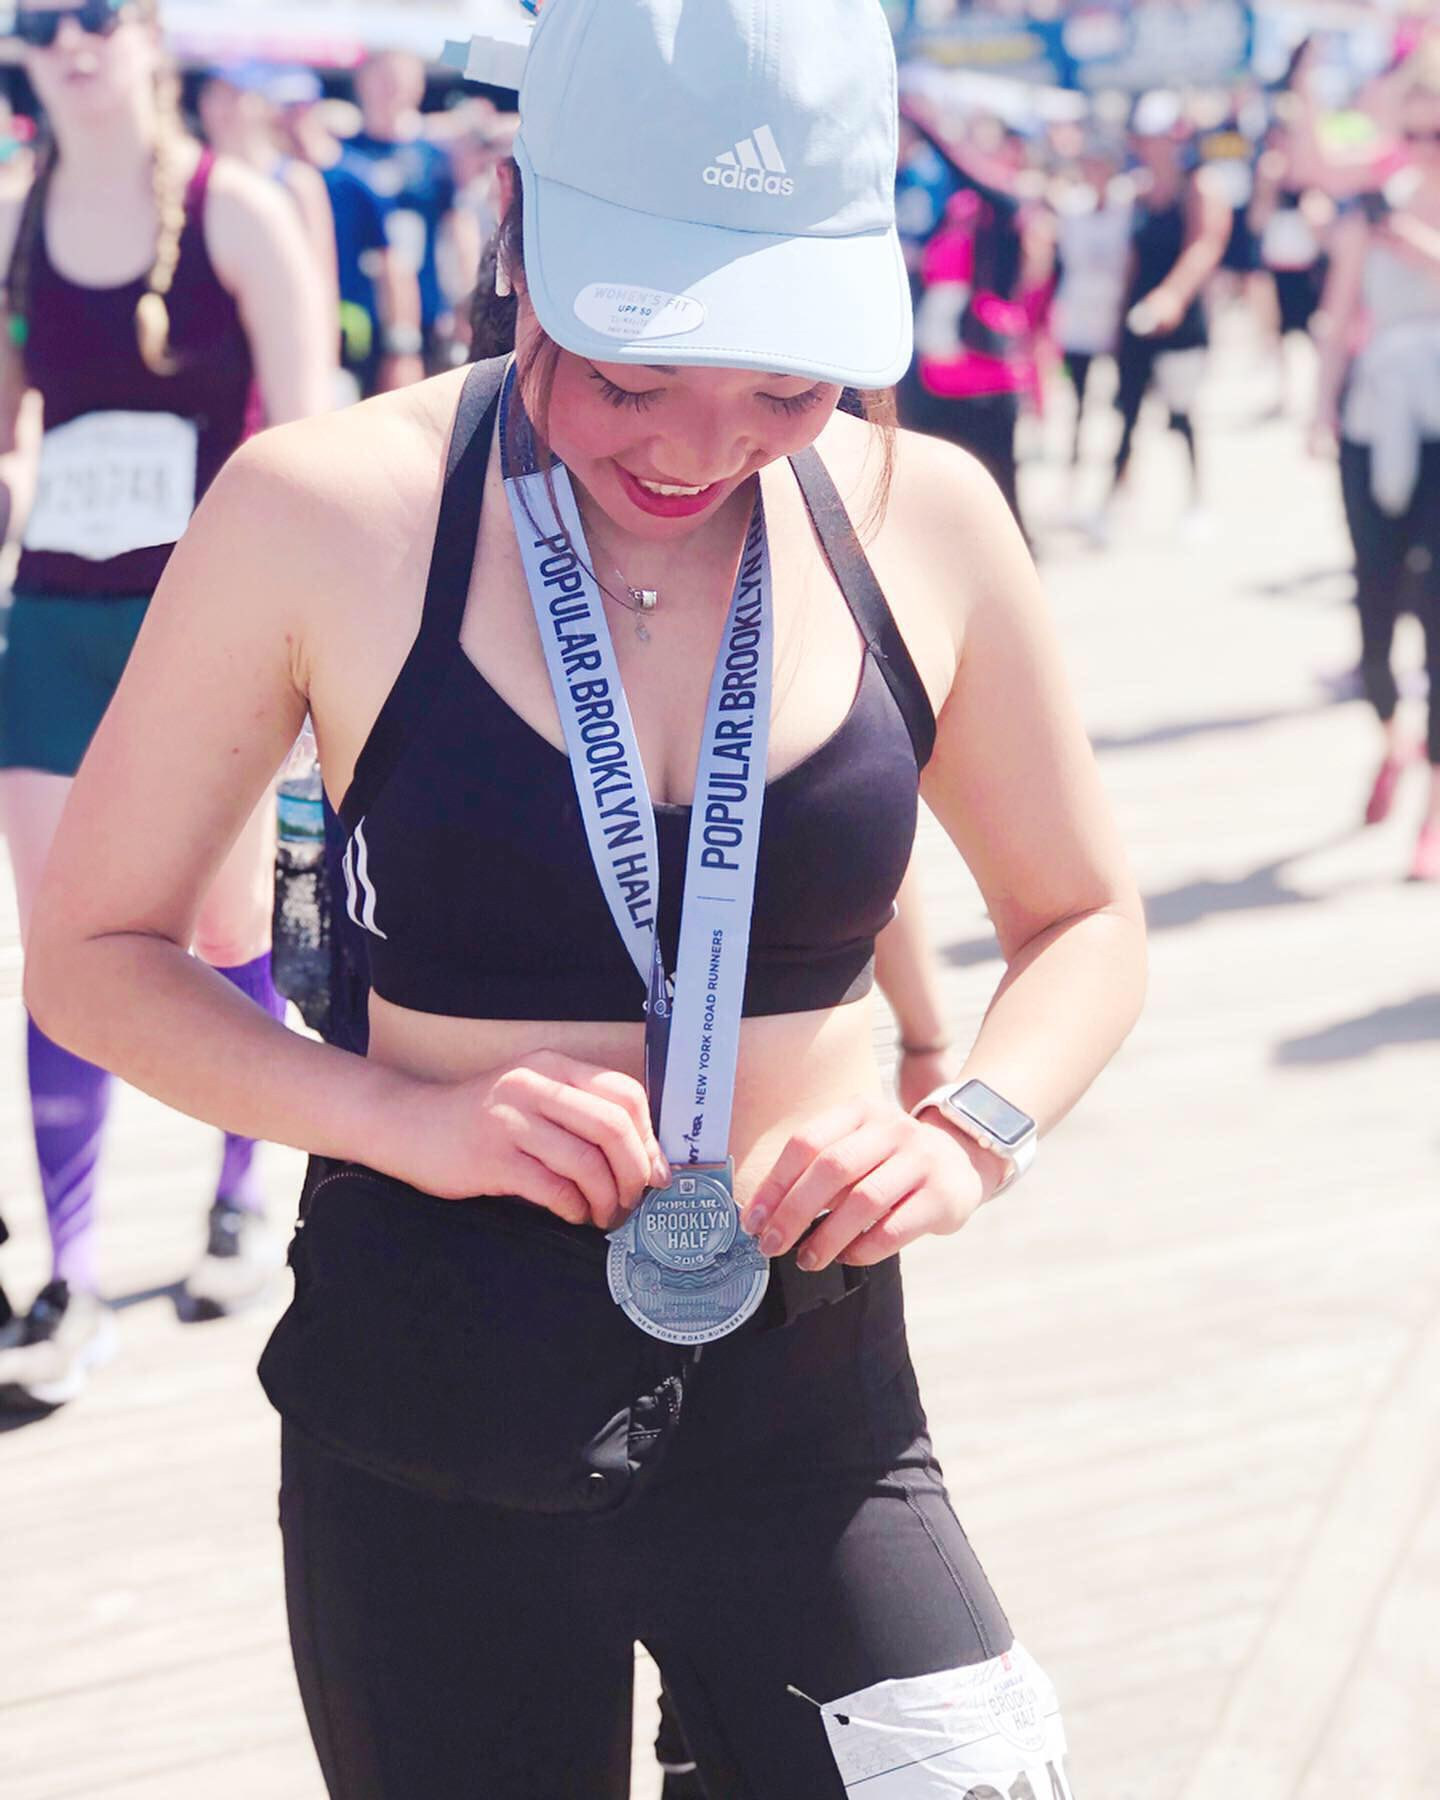 Brooklyn Half Marathon in May 18th, 2019 NYC.